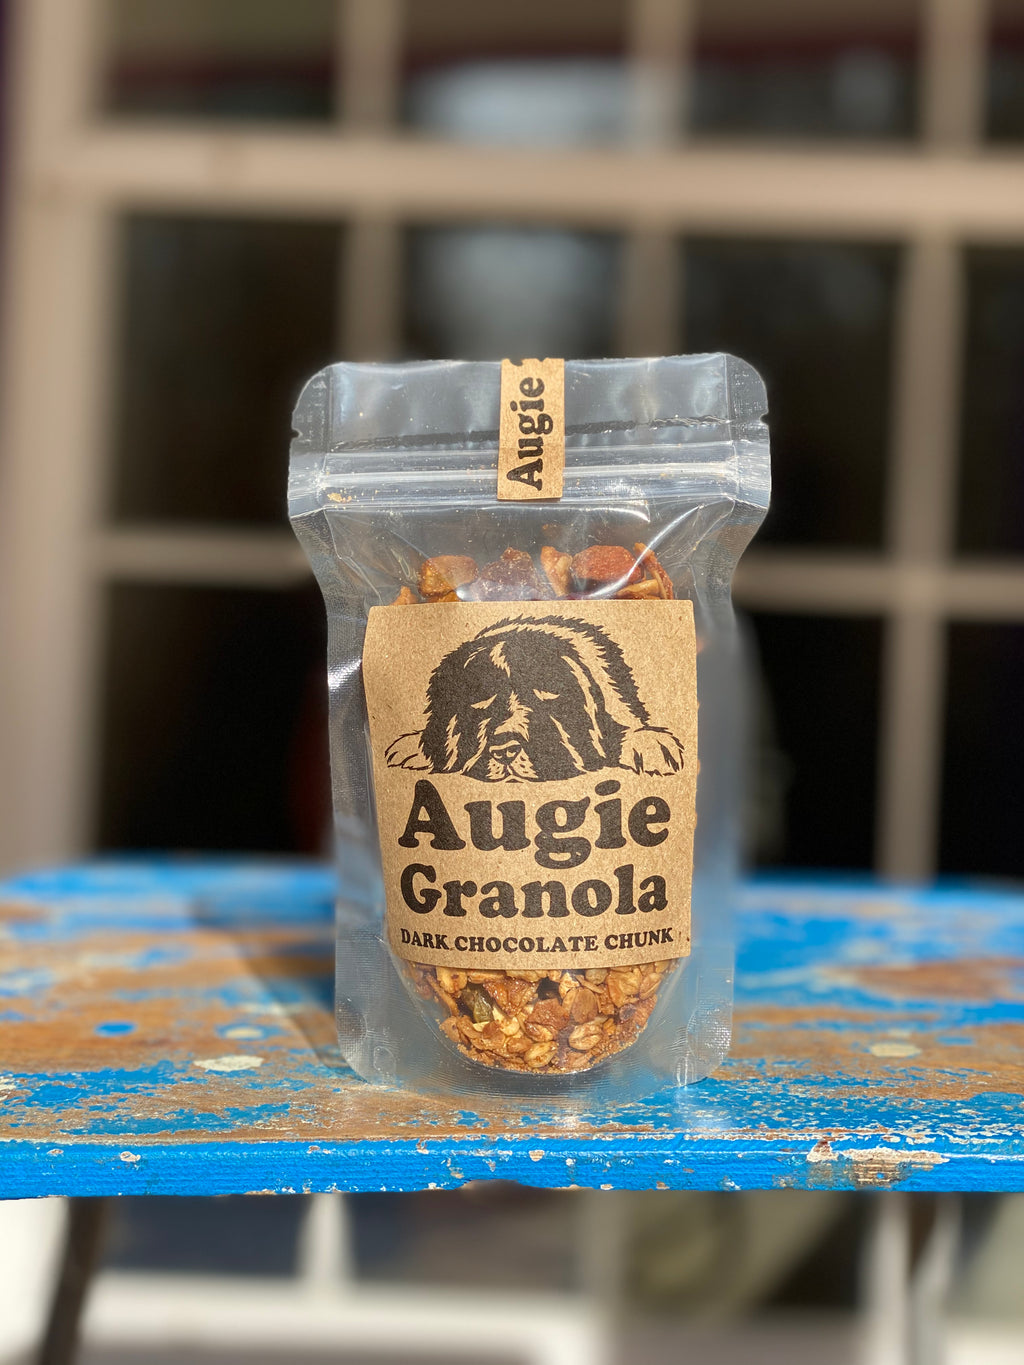 Augie treats dark chocolate chunk 3oz